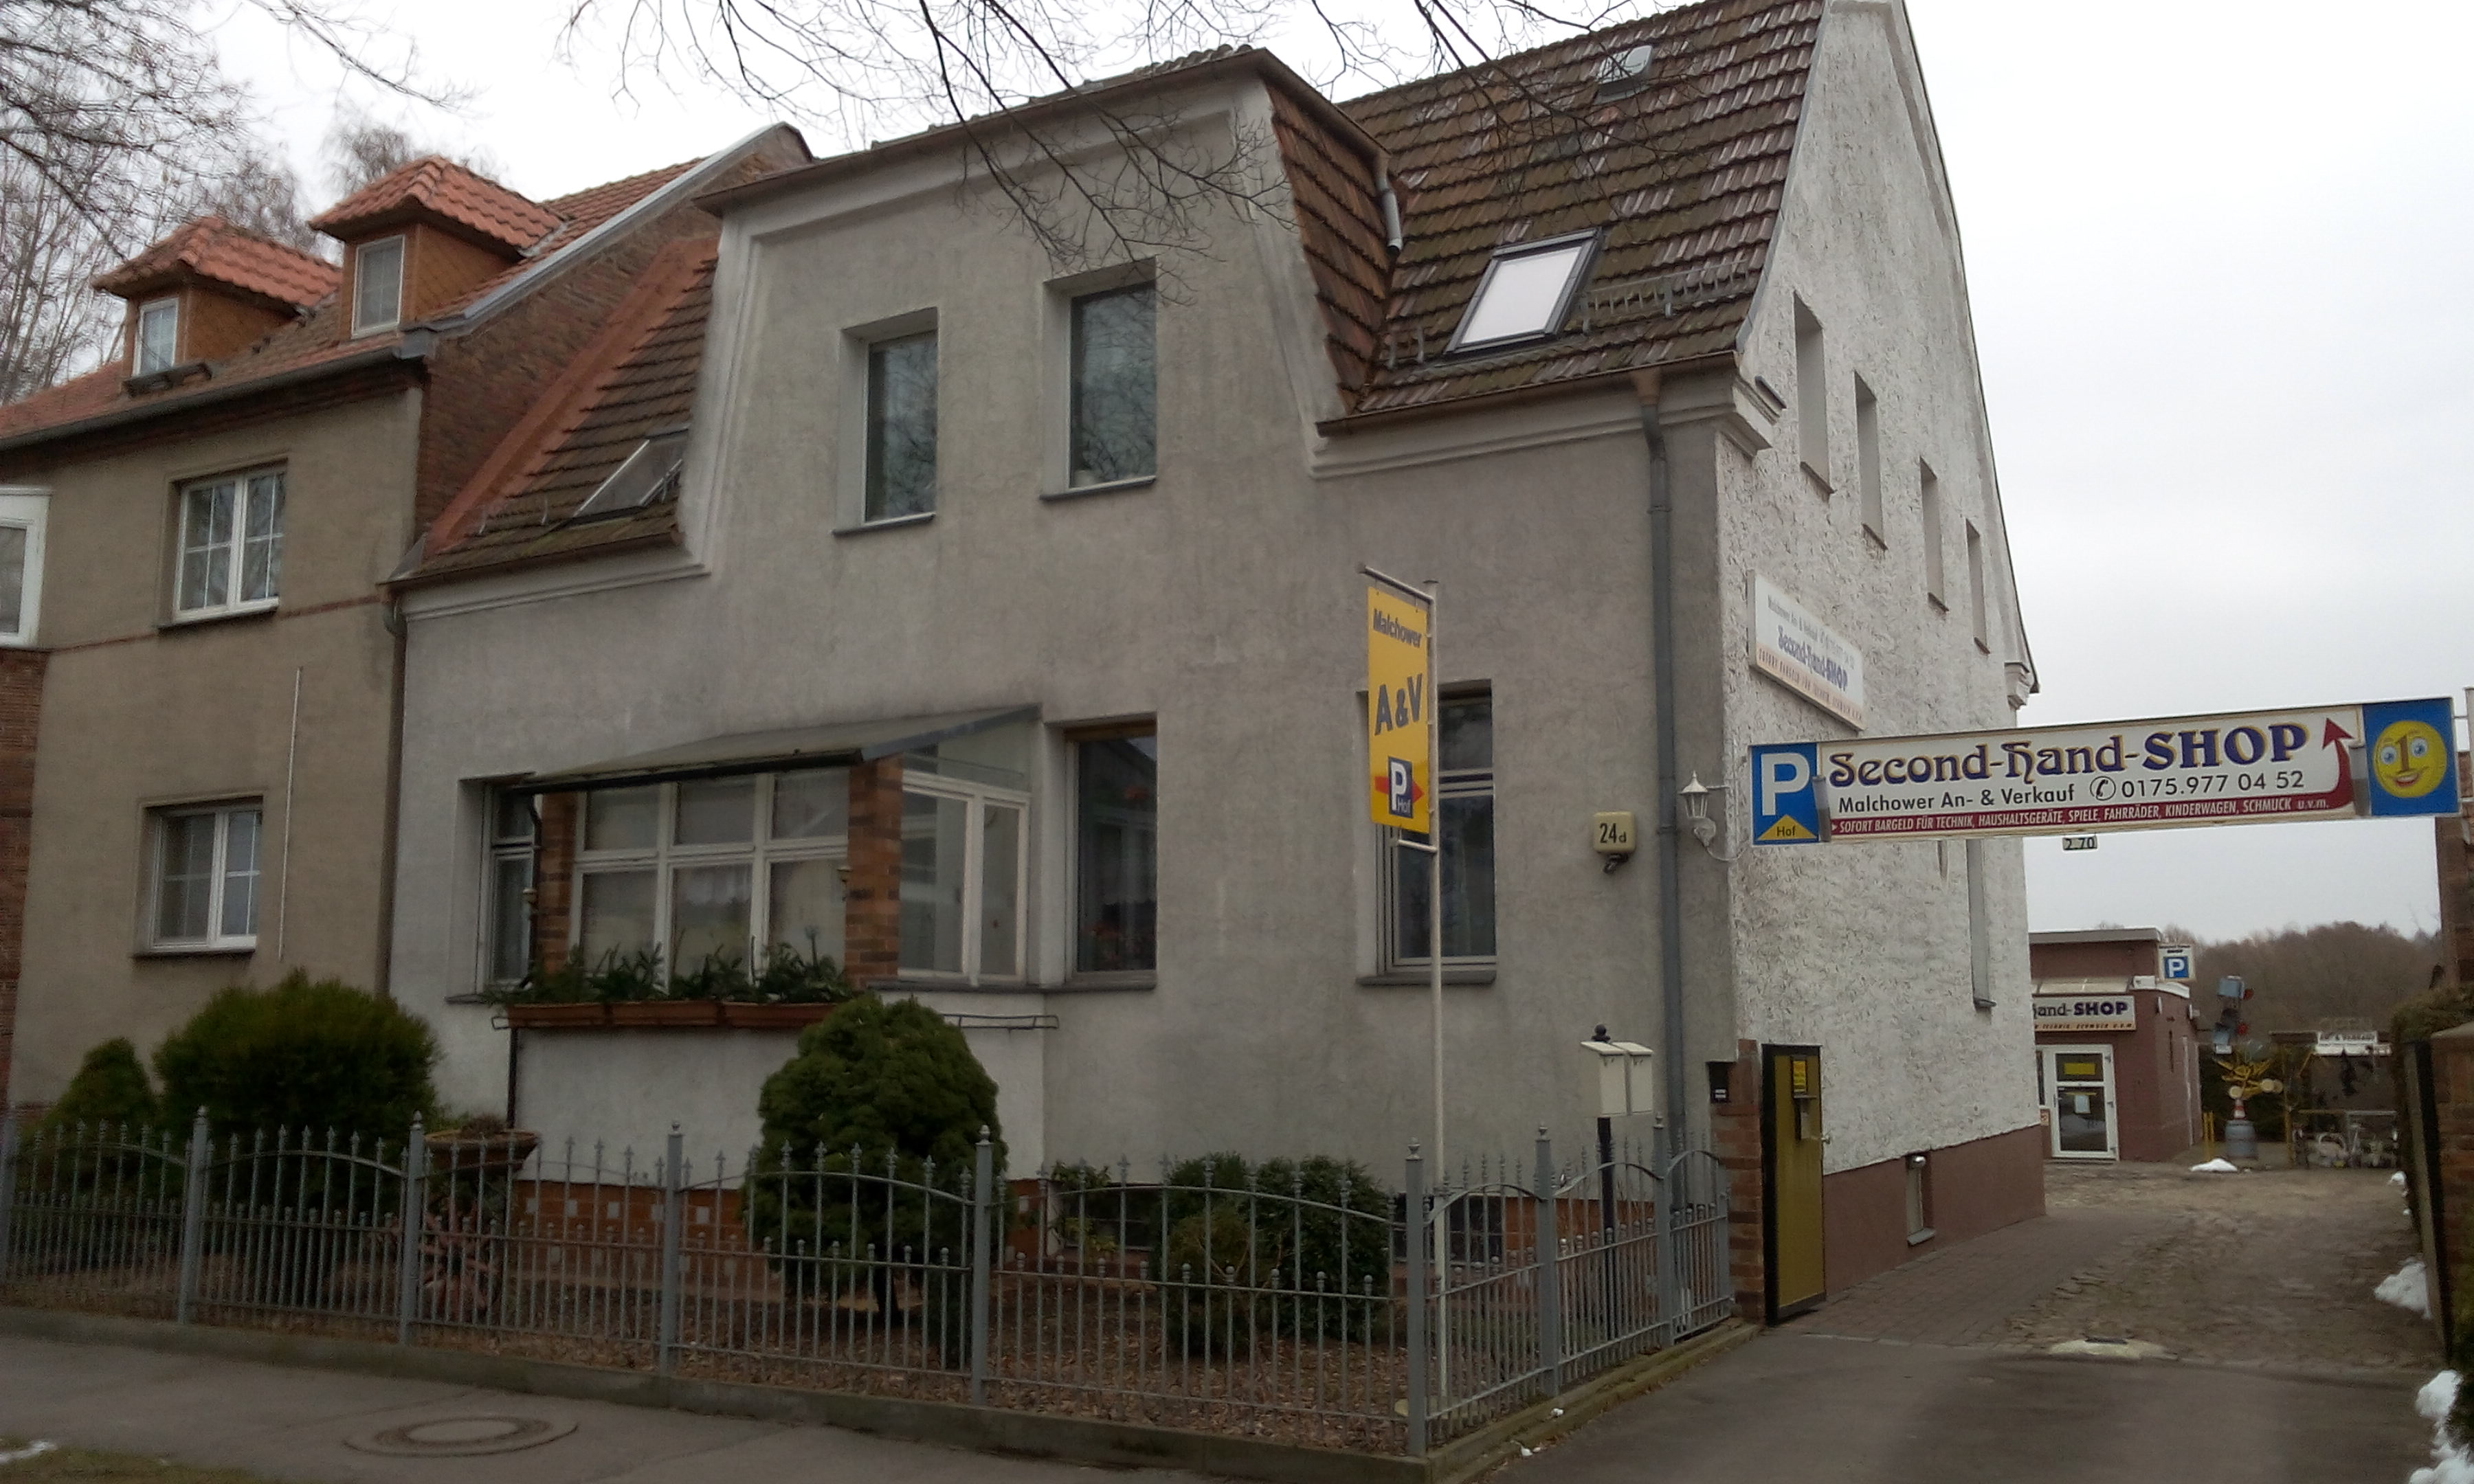 Immobilienverrentung in Berlin Malchow